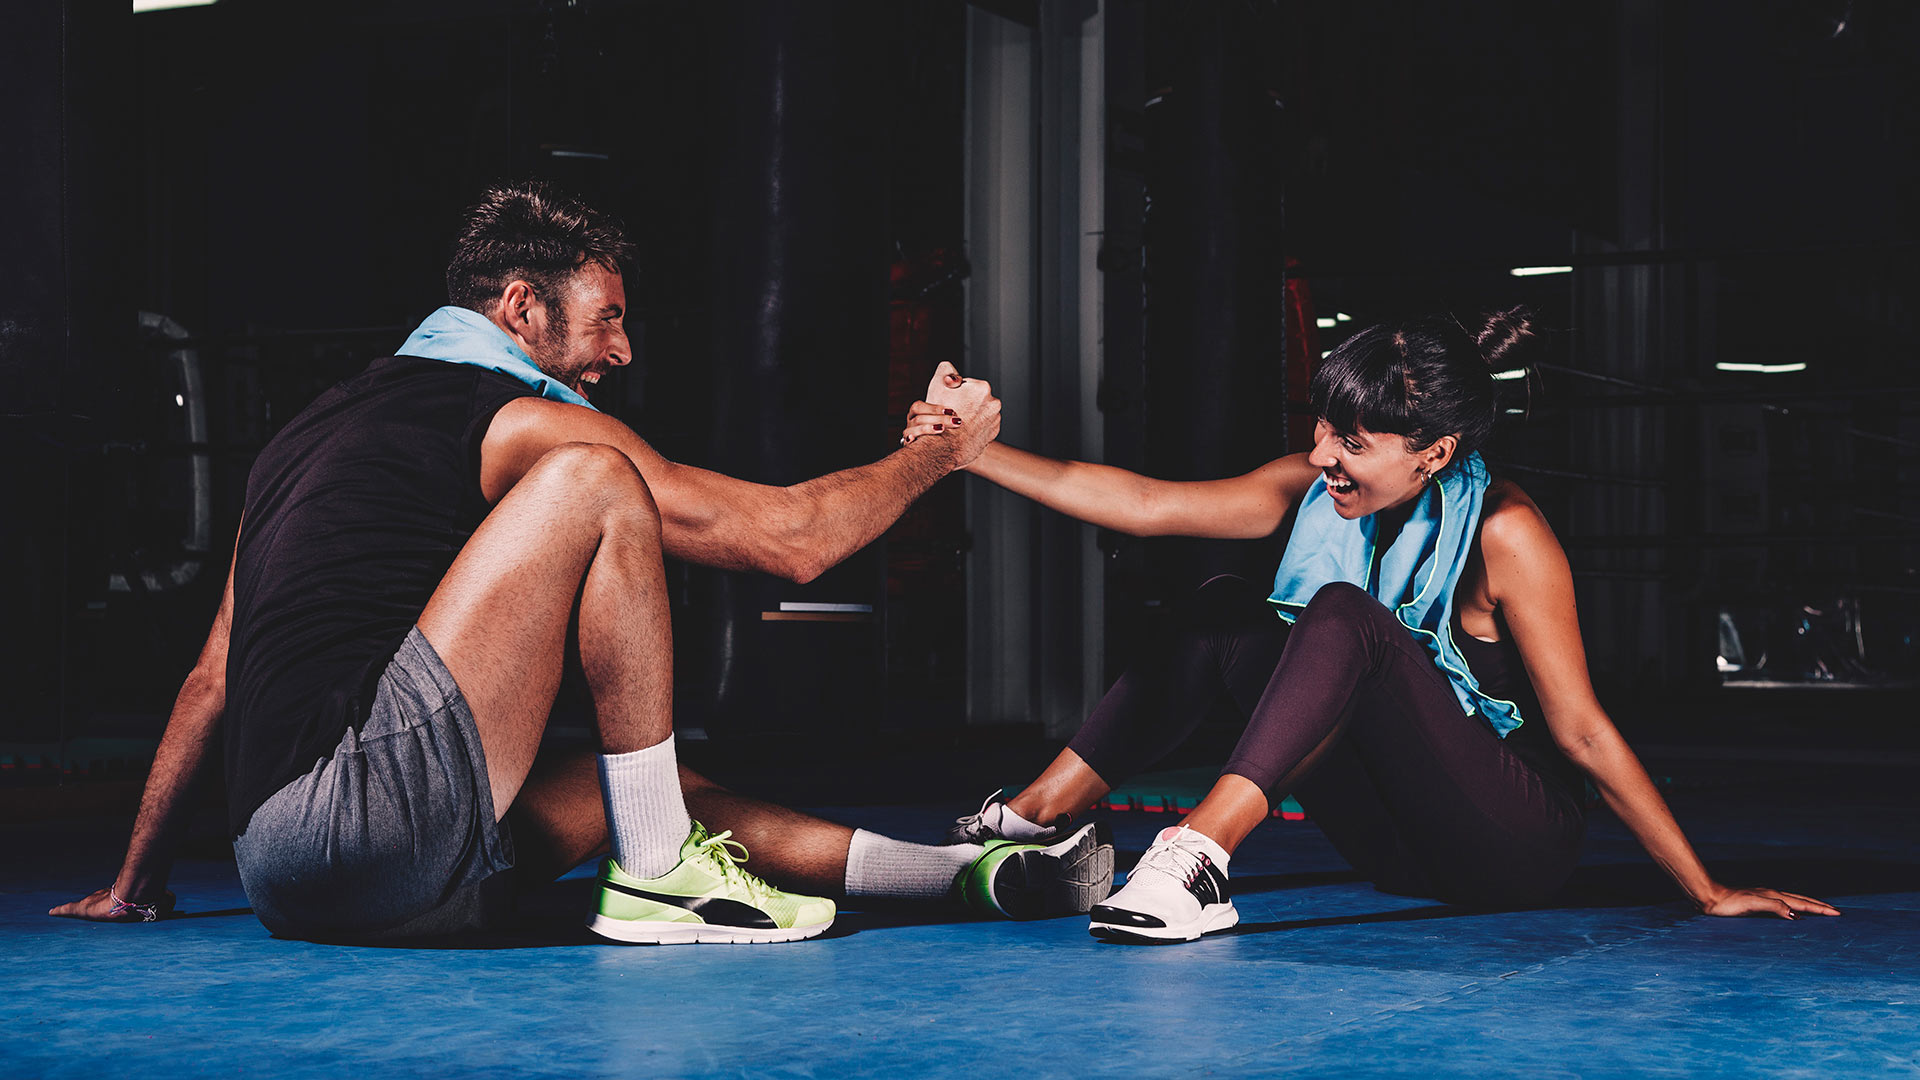 Man and Woman couple at the gym sitting on workout mats, clasping hands and laughing